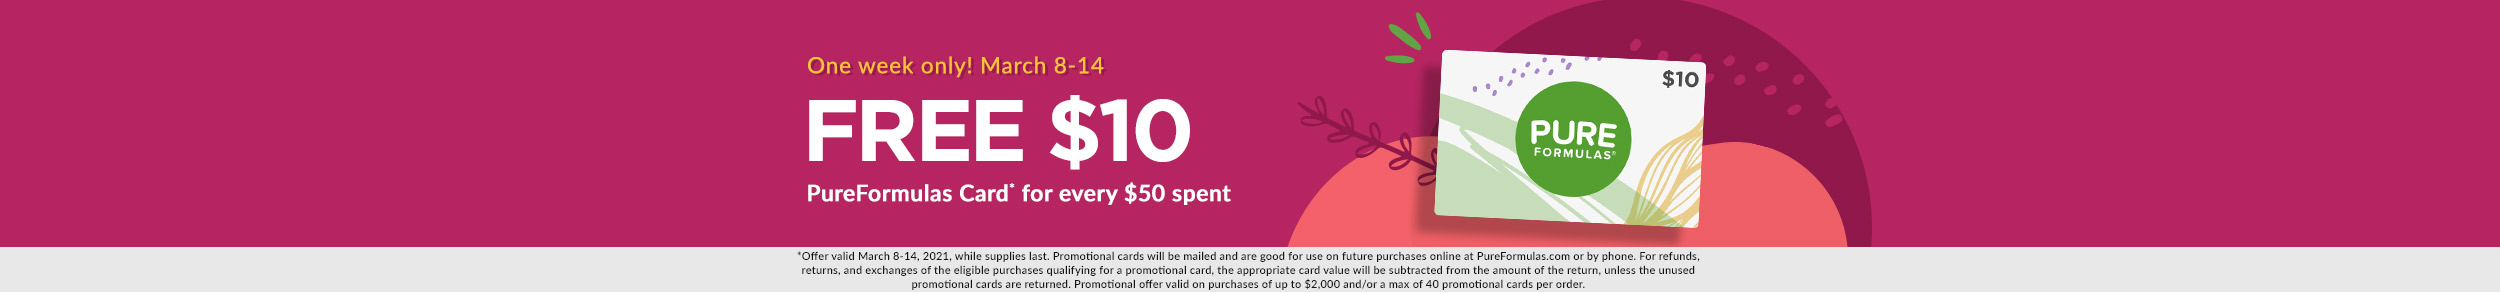 One week only! March 8-14: FREE $10 PureFormulas Card* for every $50 spent. *Valid Mar. 8-14 on purchases of up to $2,000 or 40 cards.